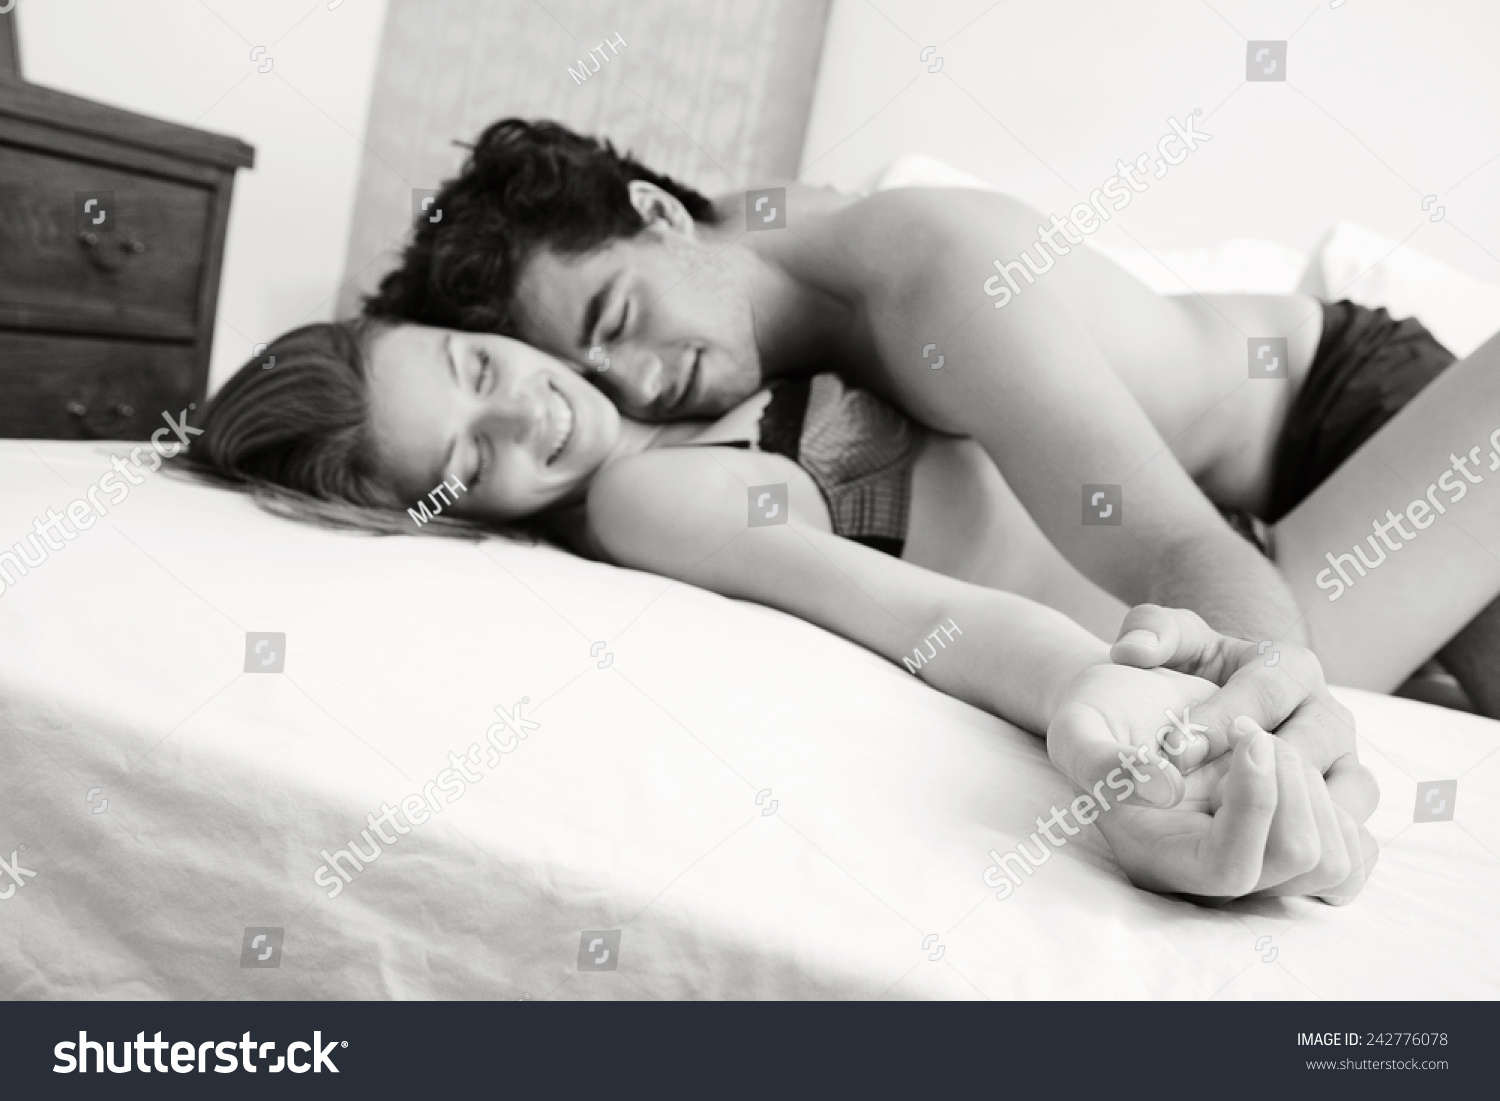 Black and white intimate sex